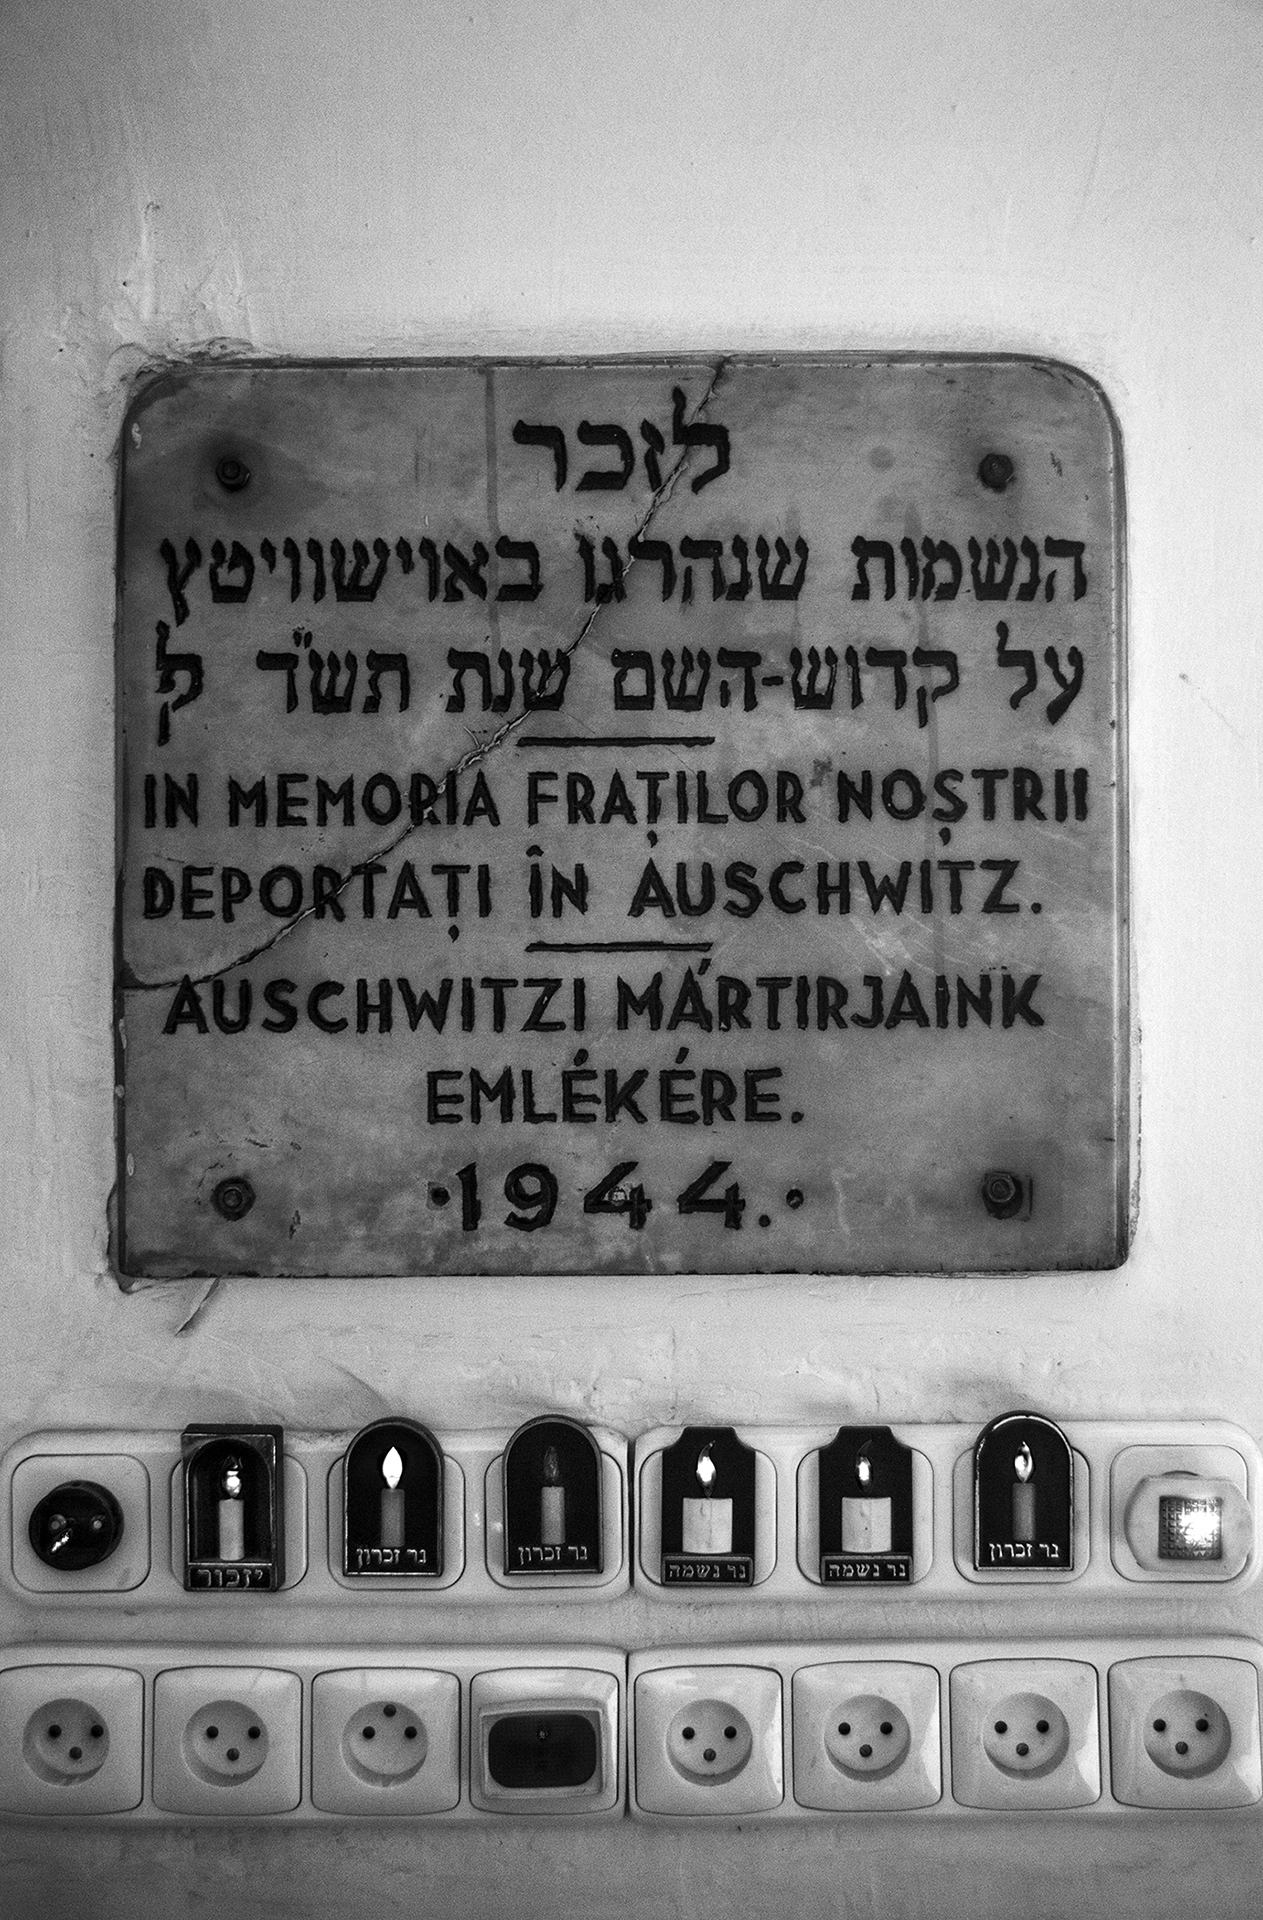 "A plaque hangs as a memorial above glowing electric candles at the Sas Chevra Synagogue in Oradea on August 28, 2013. The plaque reads, ""In memory of our brothers and sisters deported to Auschwitz."" (Photo by Daniel Owen/GroundTruth)"